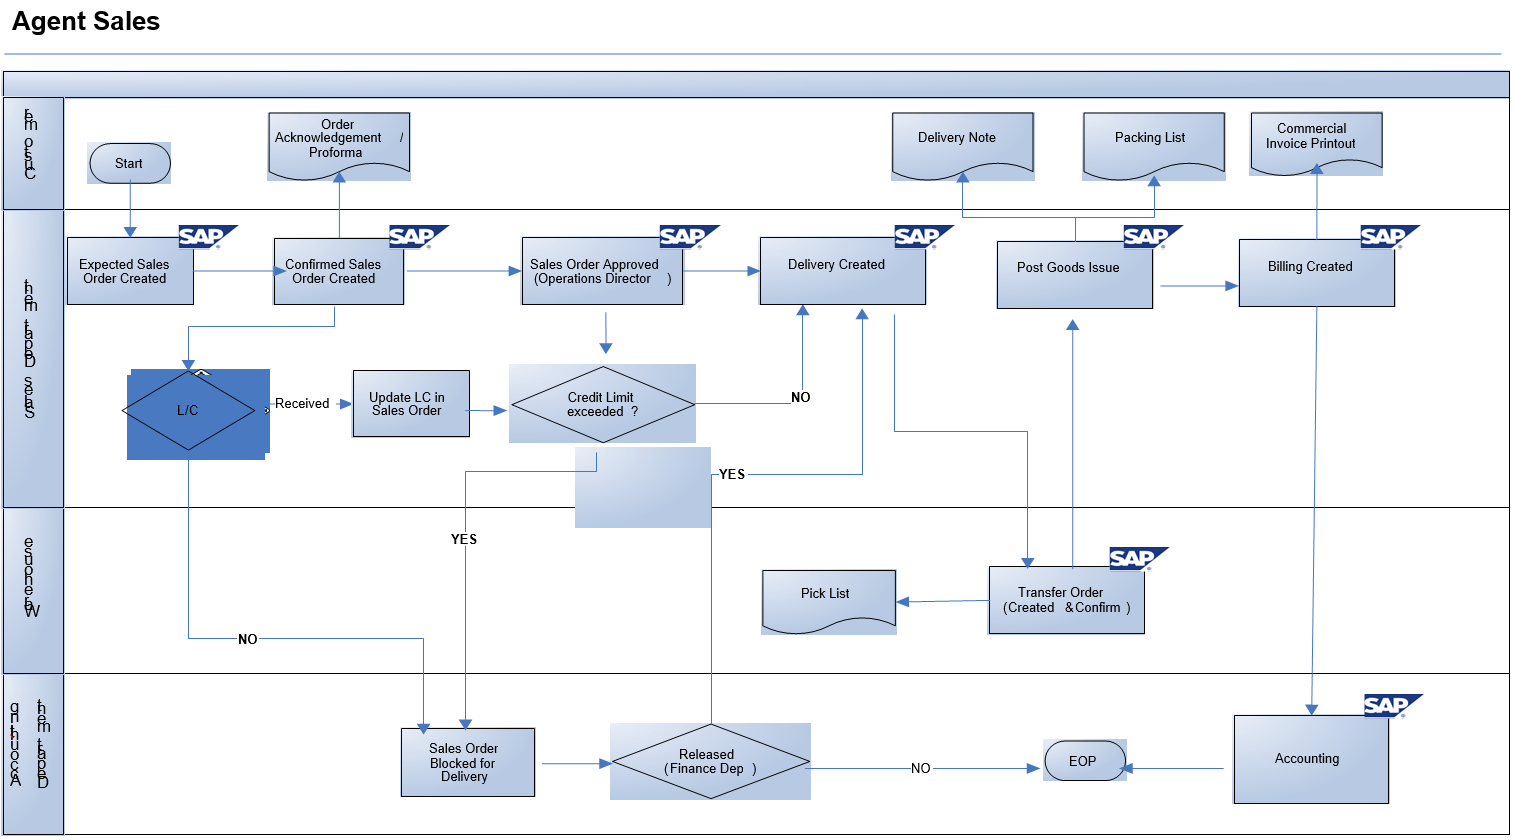 Sap sd business blueprint export sales process scenario and flow export sales process flow diagram in sap sd malvernweather Images